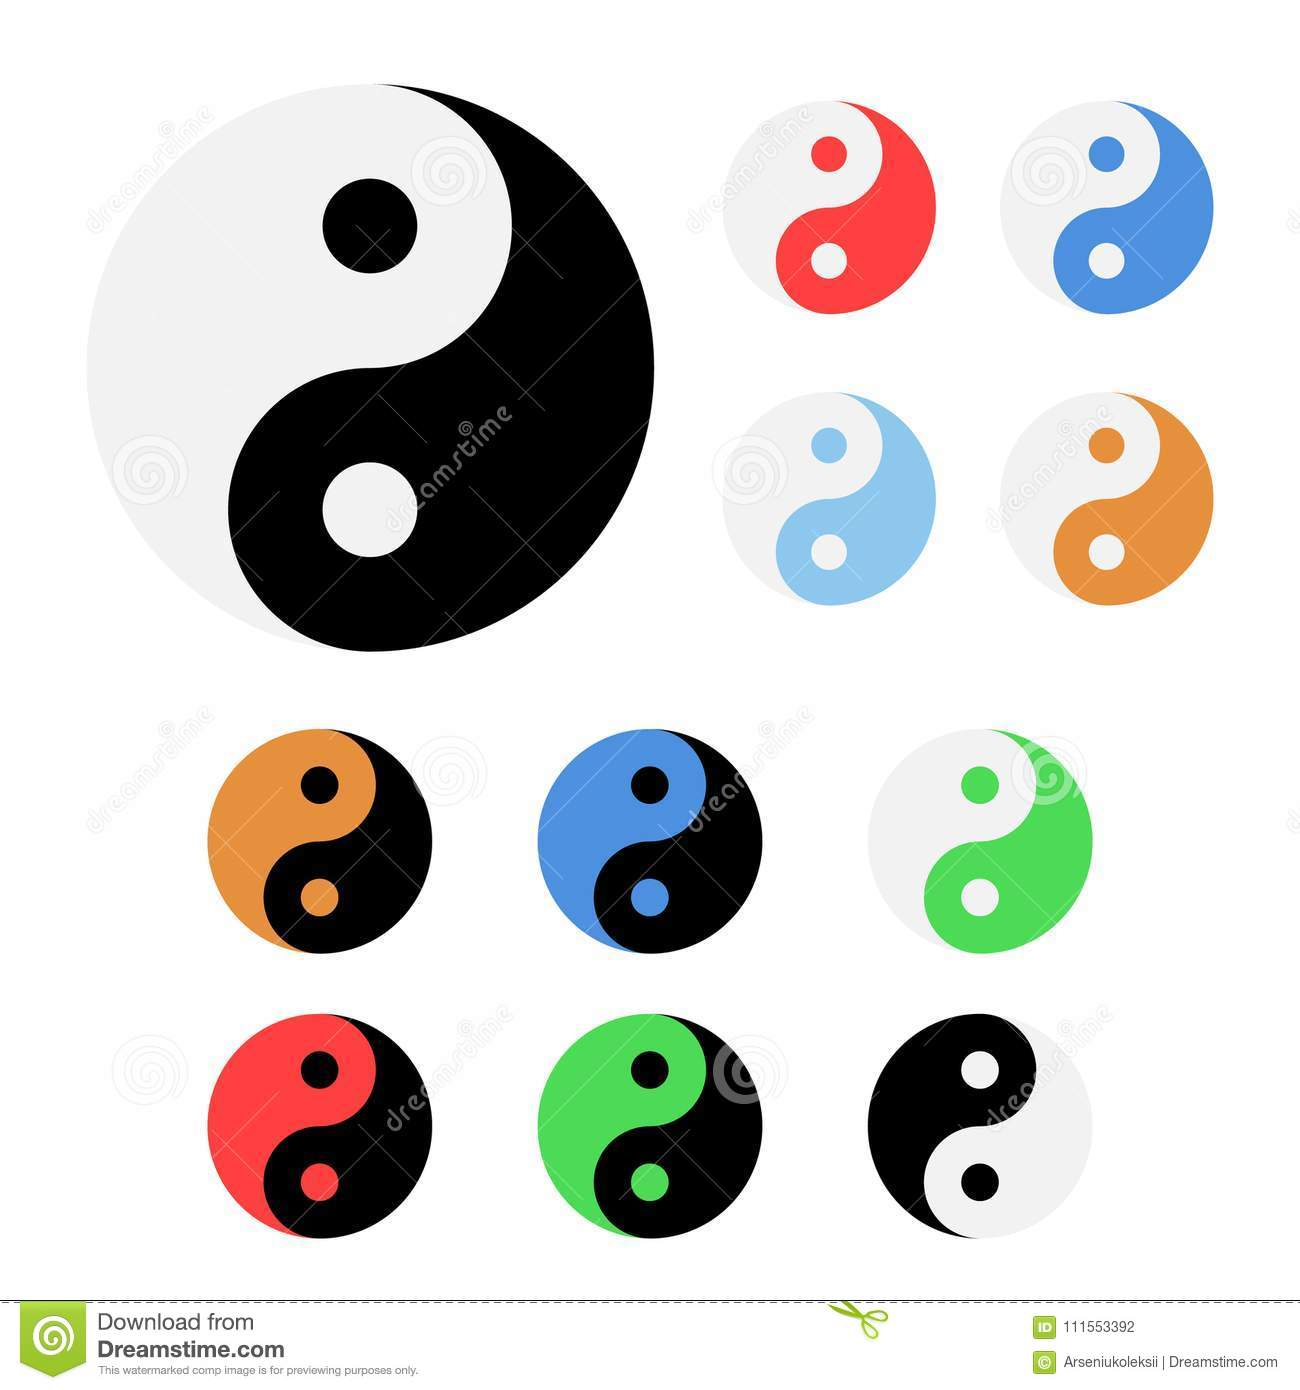 sports health system yin yang and balance In chinese philosophy, yin and yang ('dark-bright') describe how opposite forces in the natural world can complement each other the balance of these two energies leads to optimum health and potency.